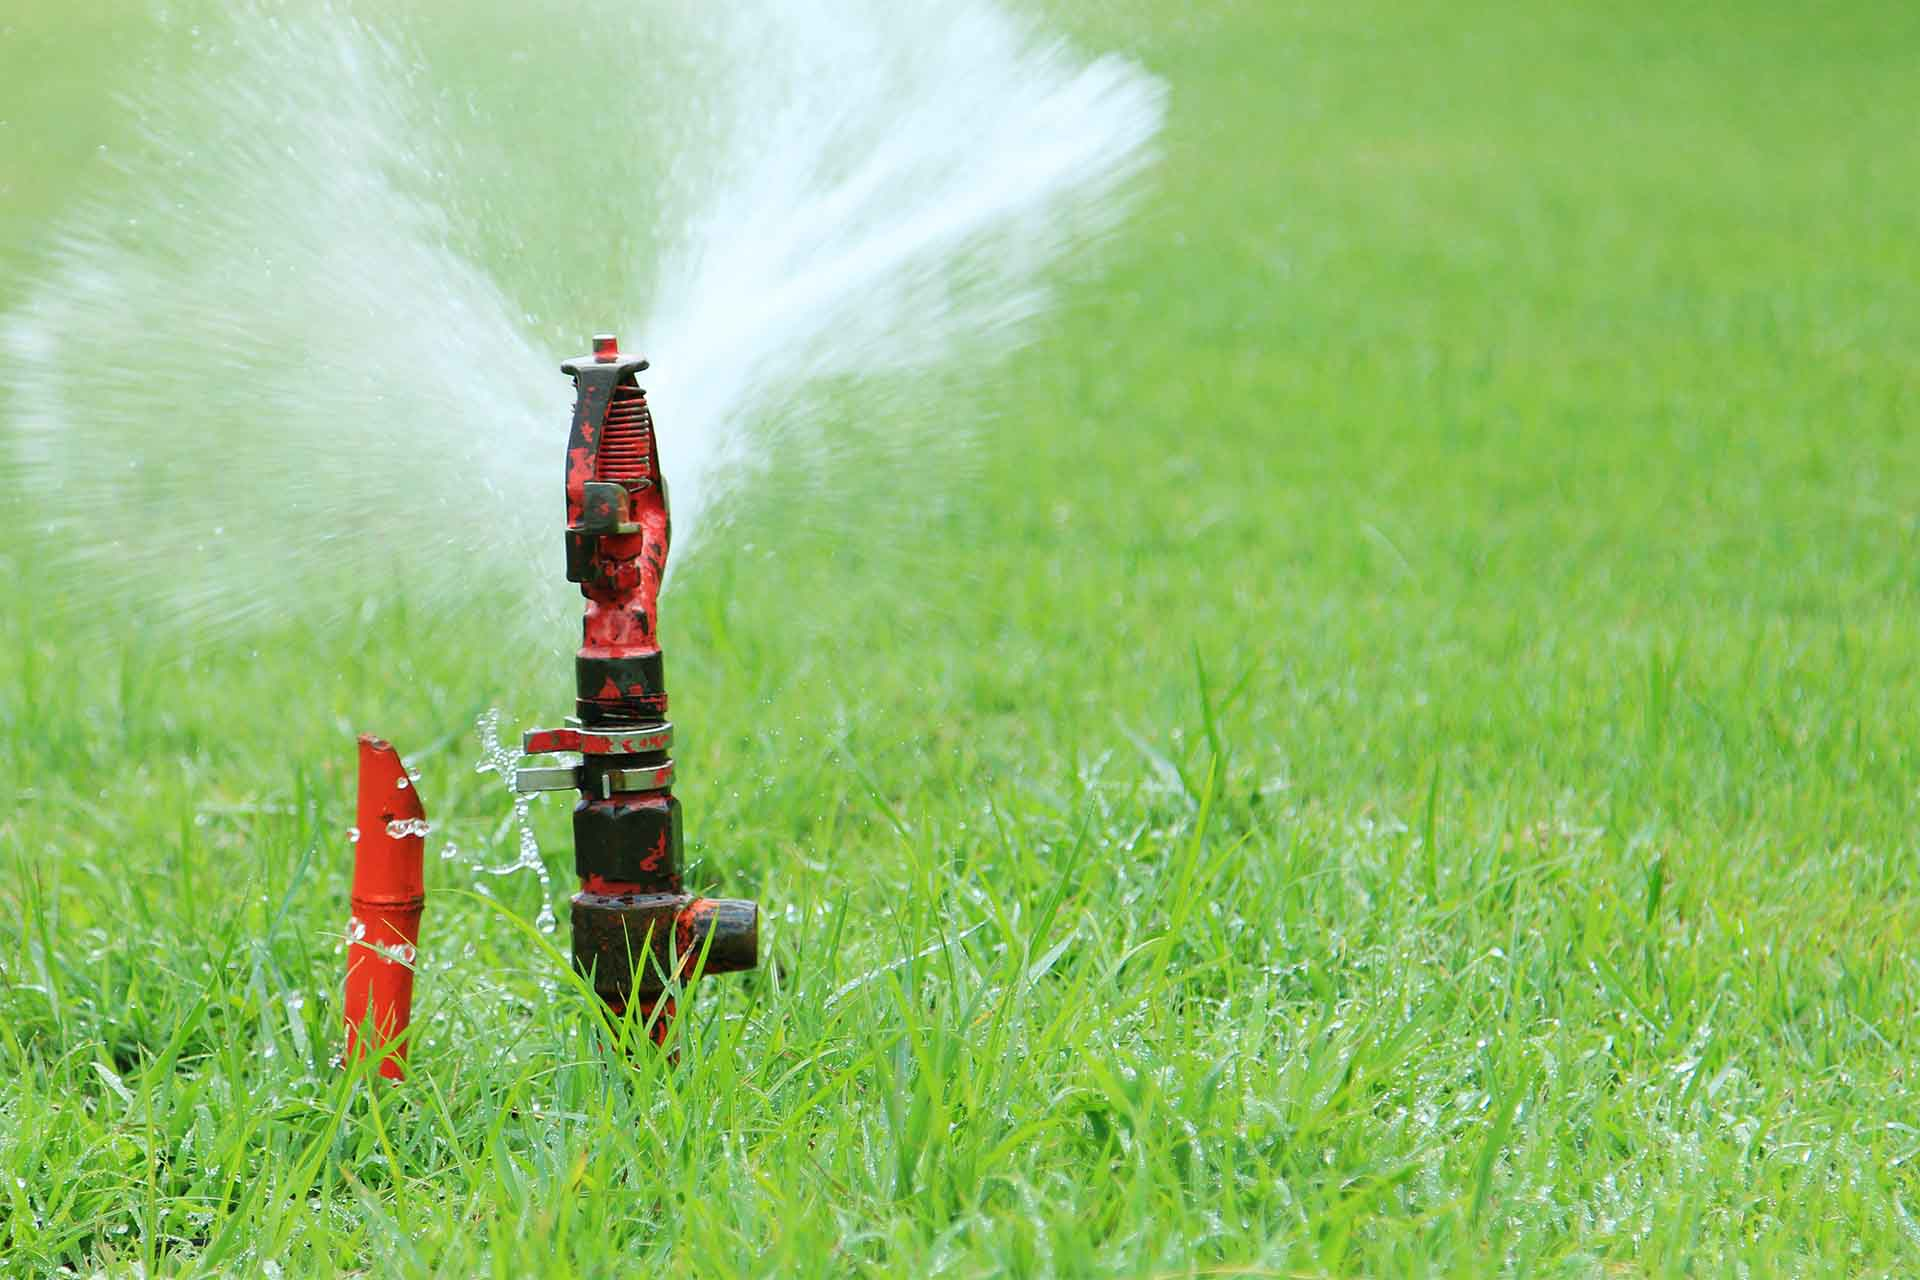 How Do I Maintain My Lawn Sprinkler System?